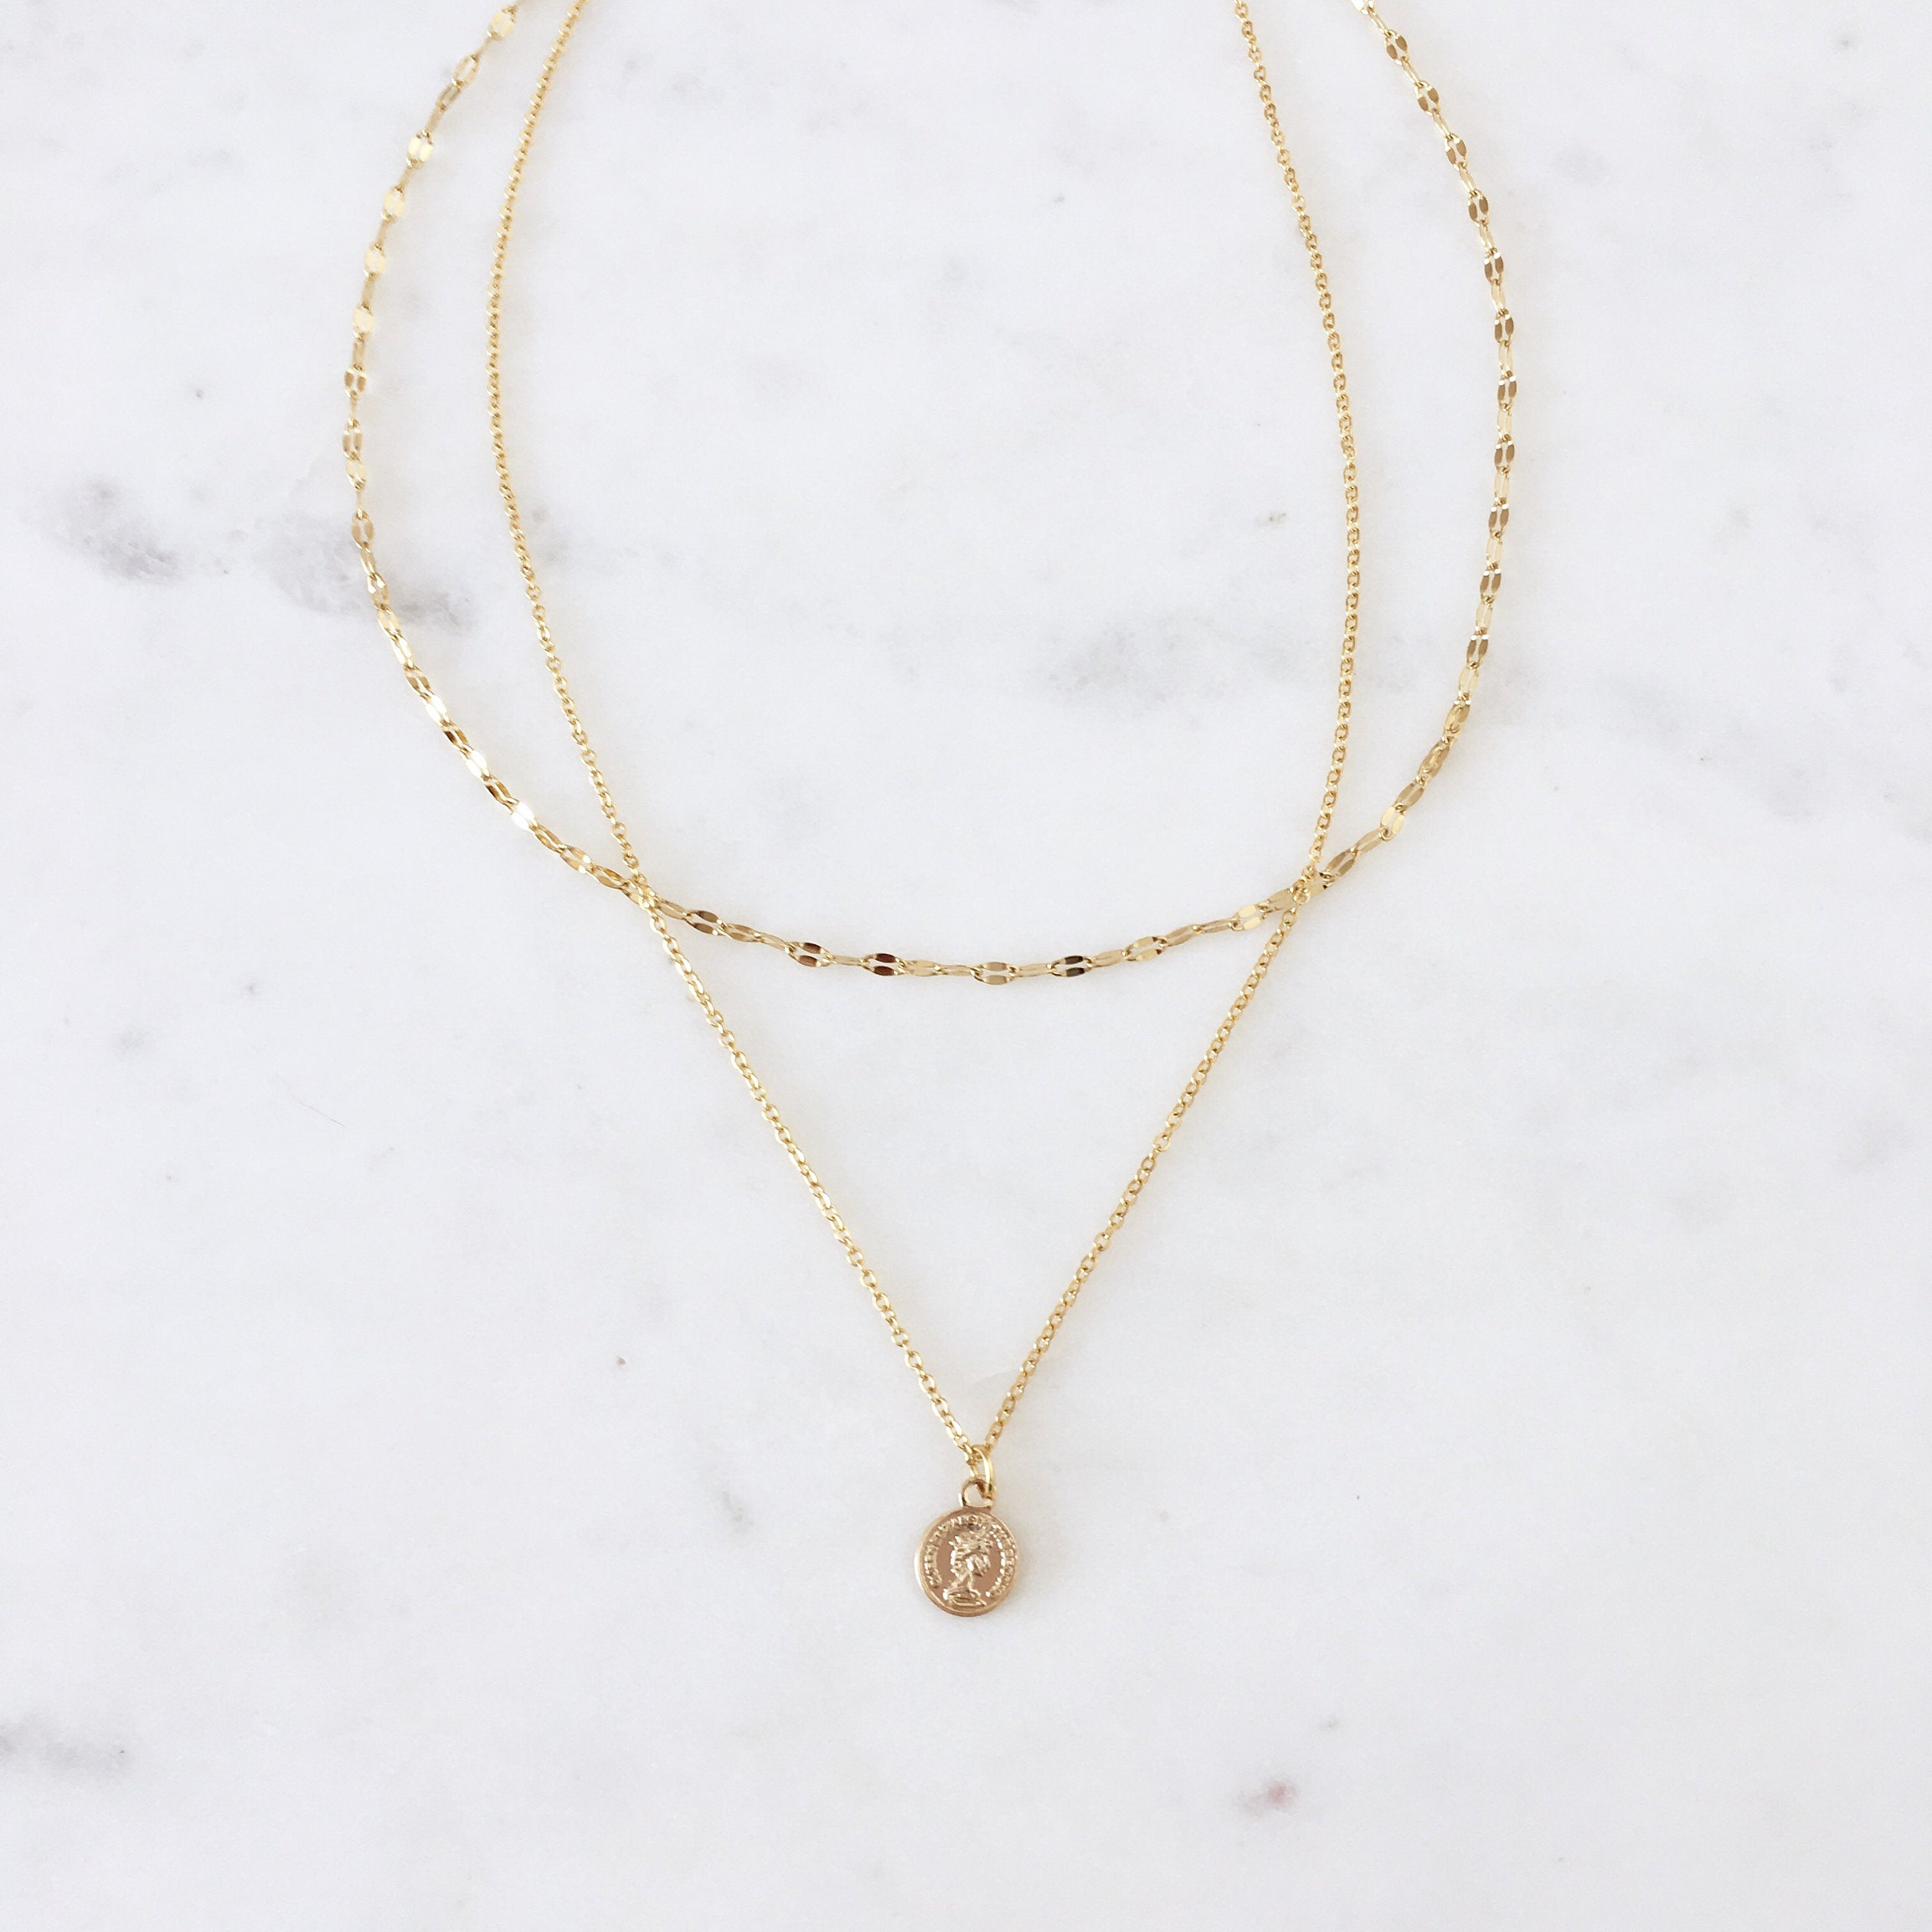 Small Gold Coin Necklace set